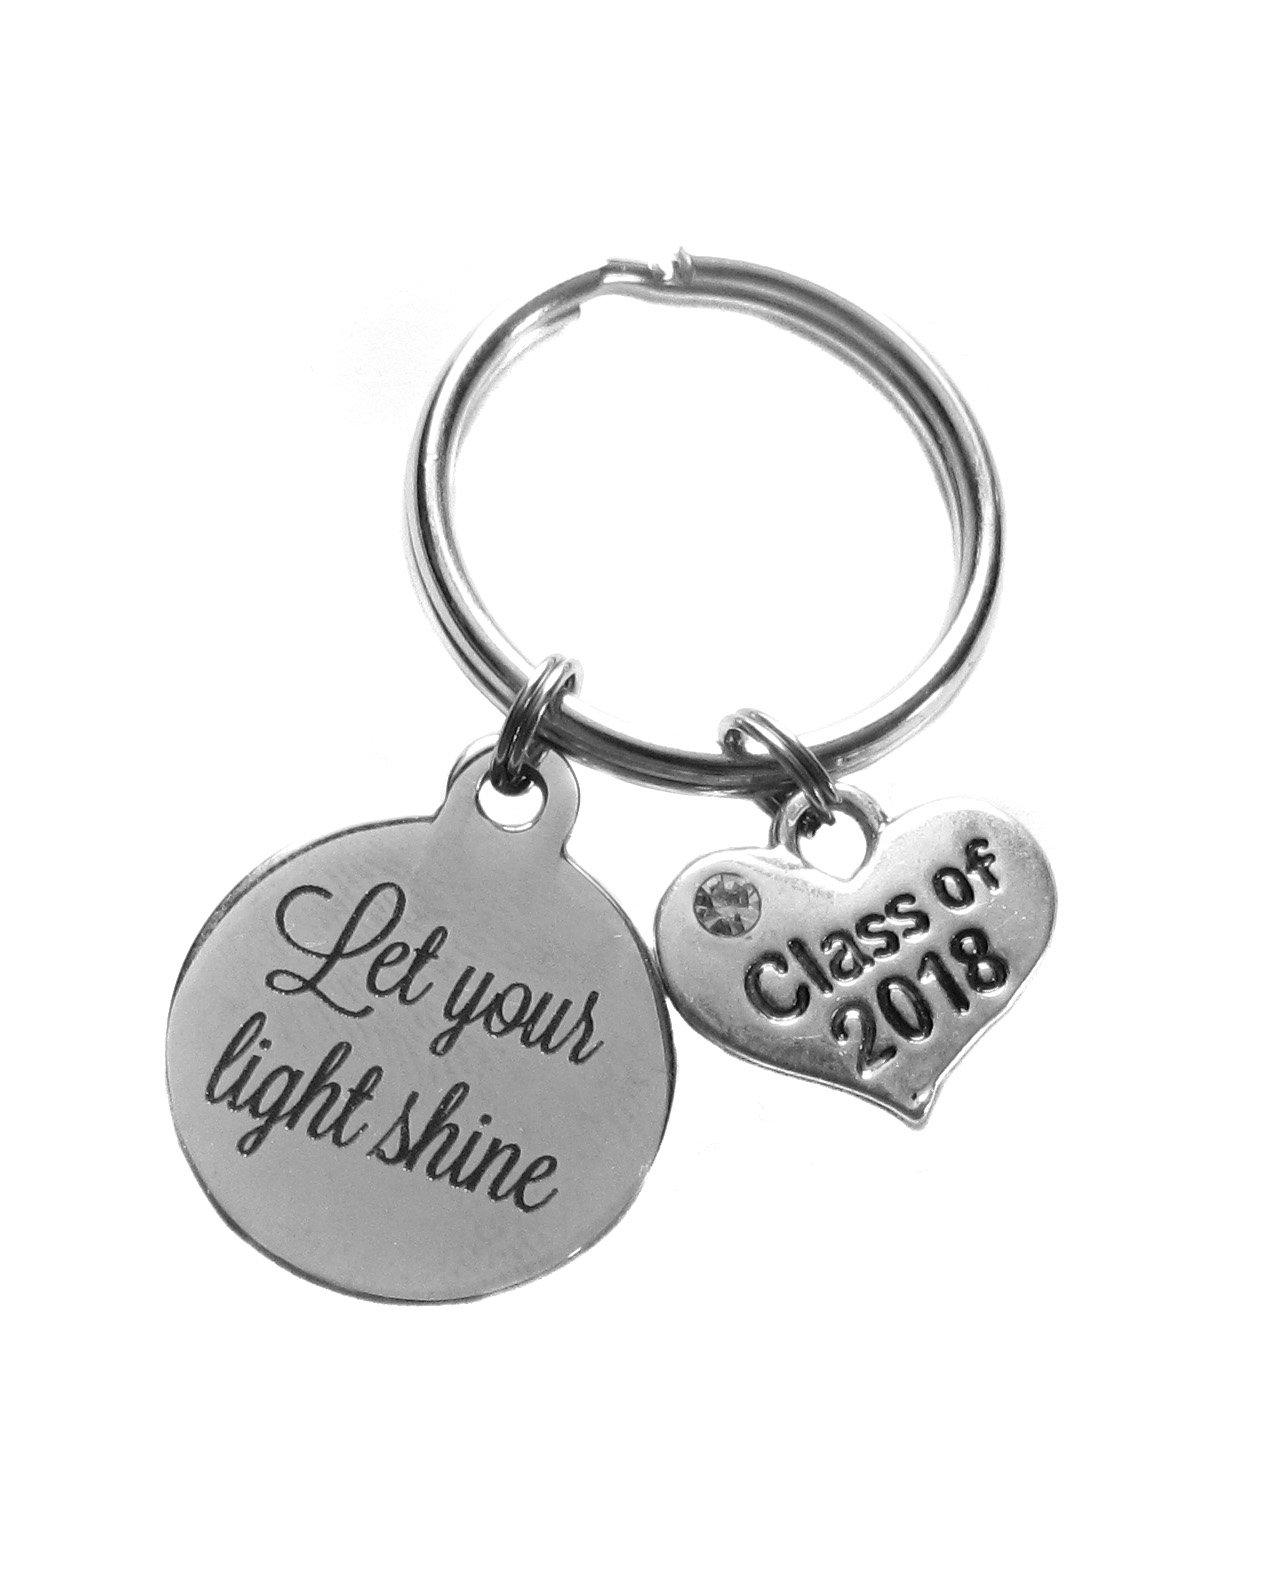 Heart Projects Let Your Light Shine Class of 2018 Charm Keychain, Bag Charm, Inspirational Graduation Gift